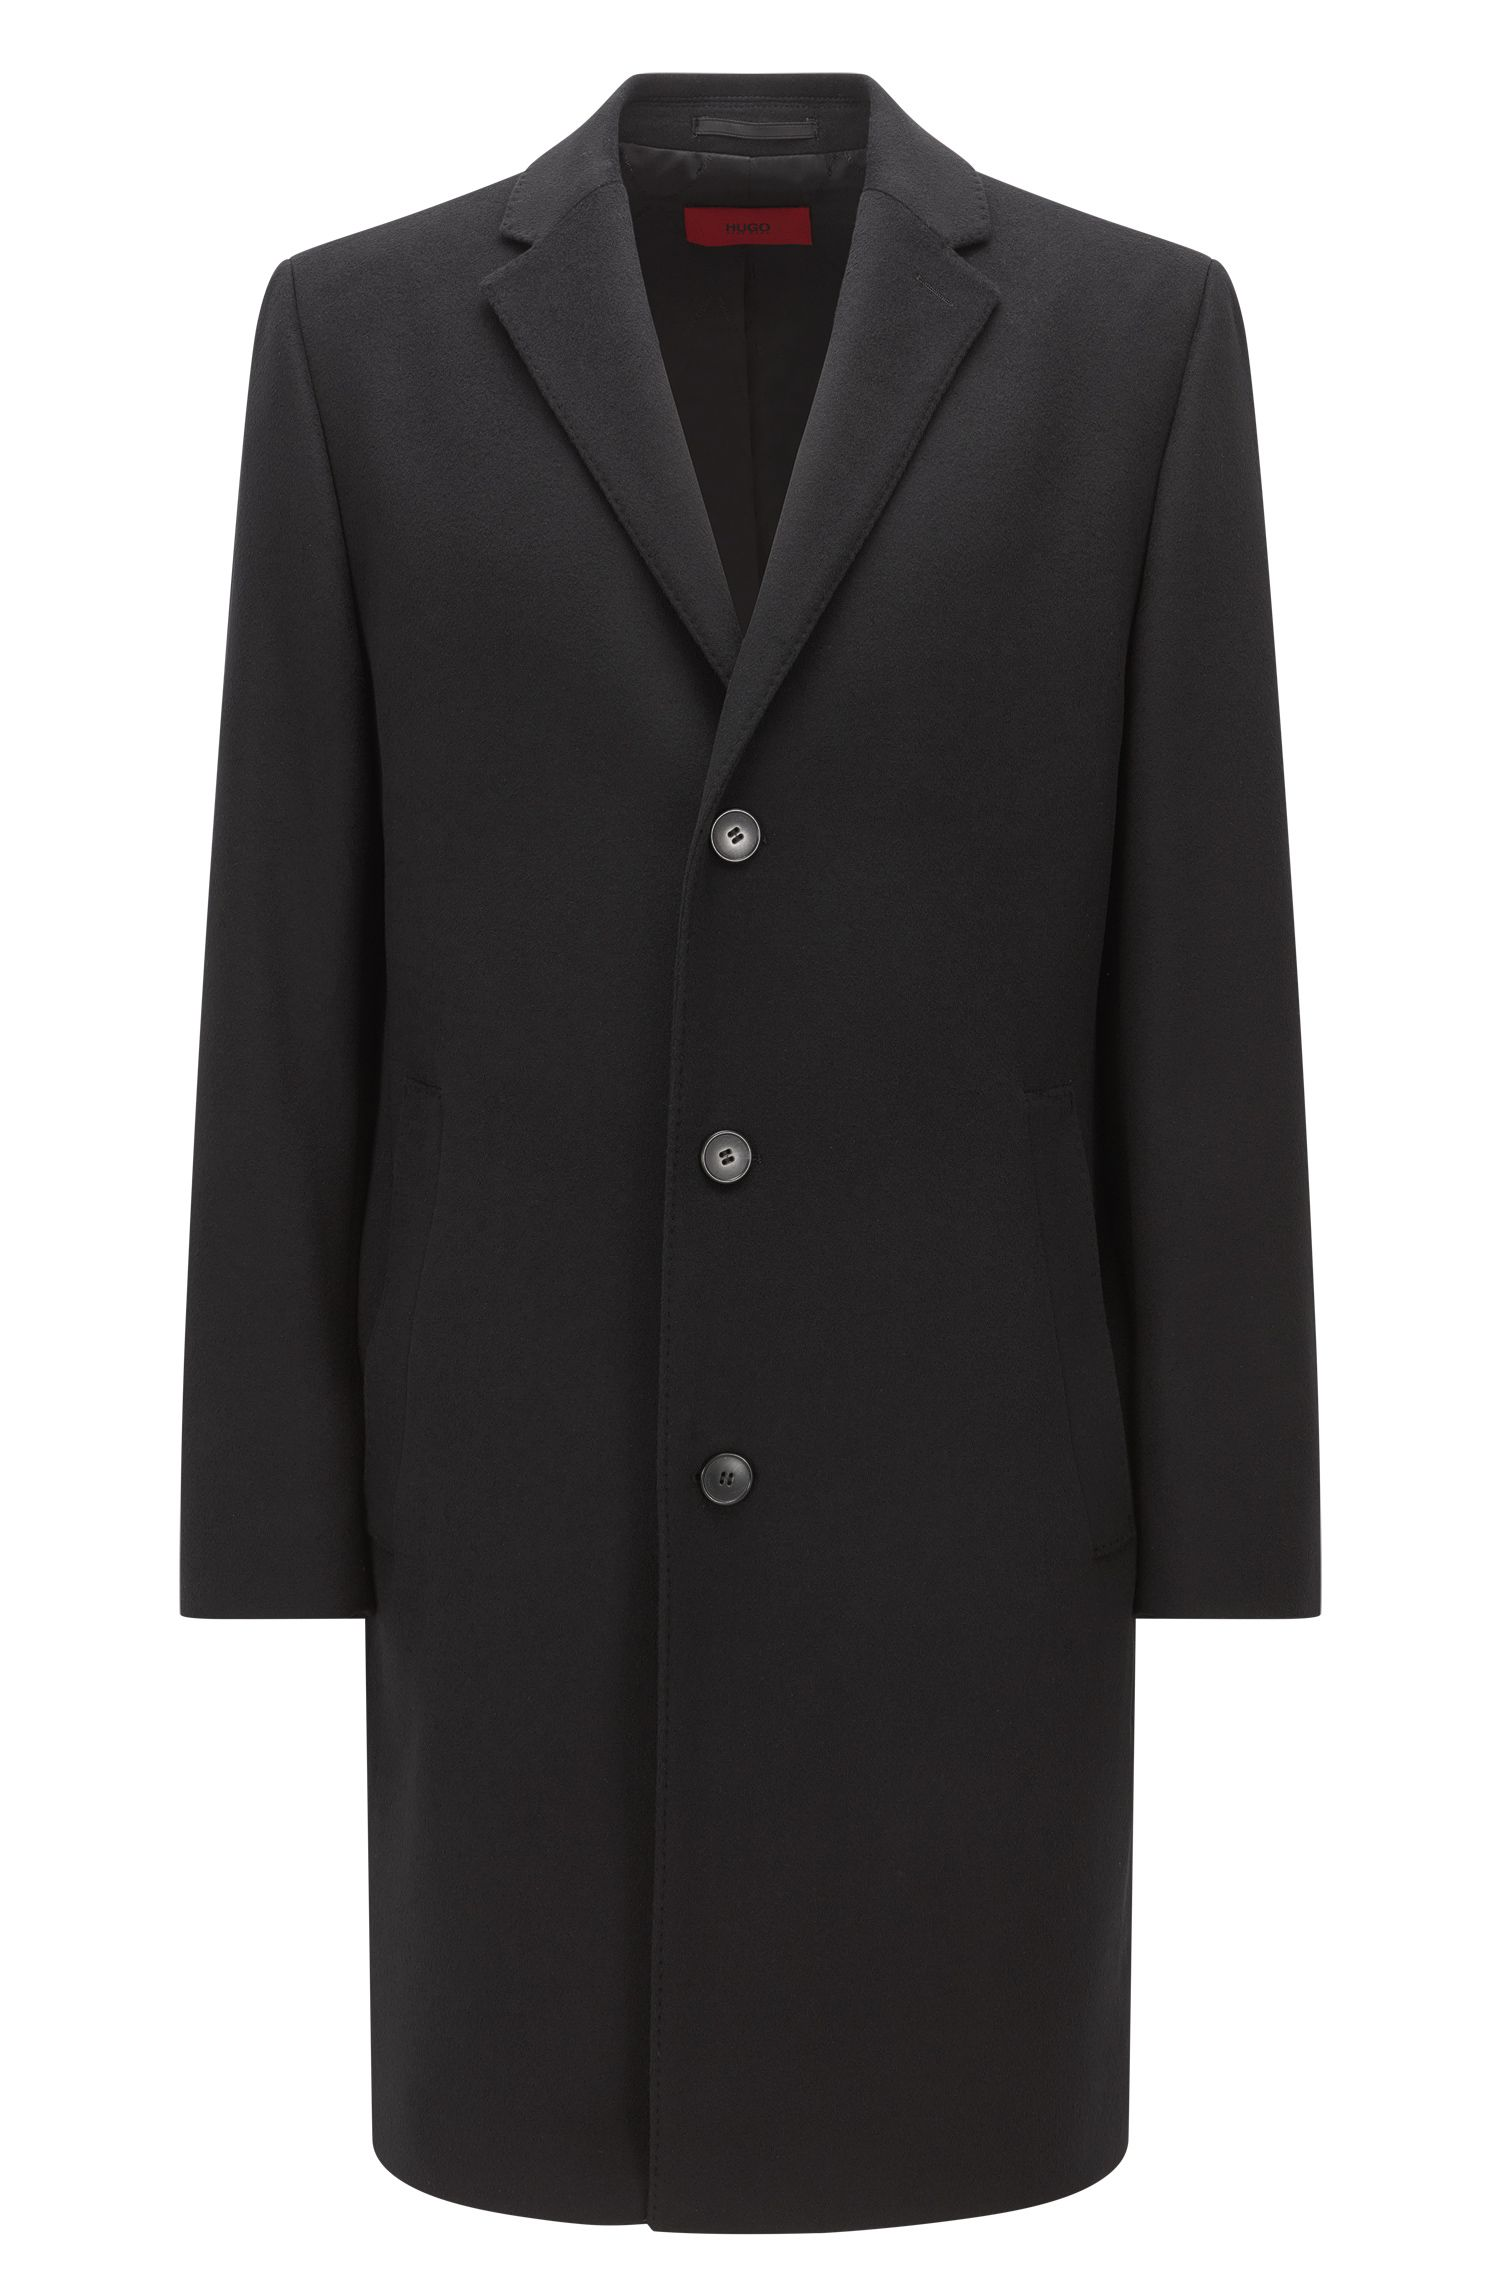 Wool-blend overcoat in a regular fit